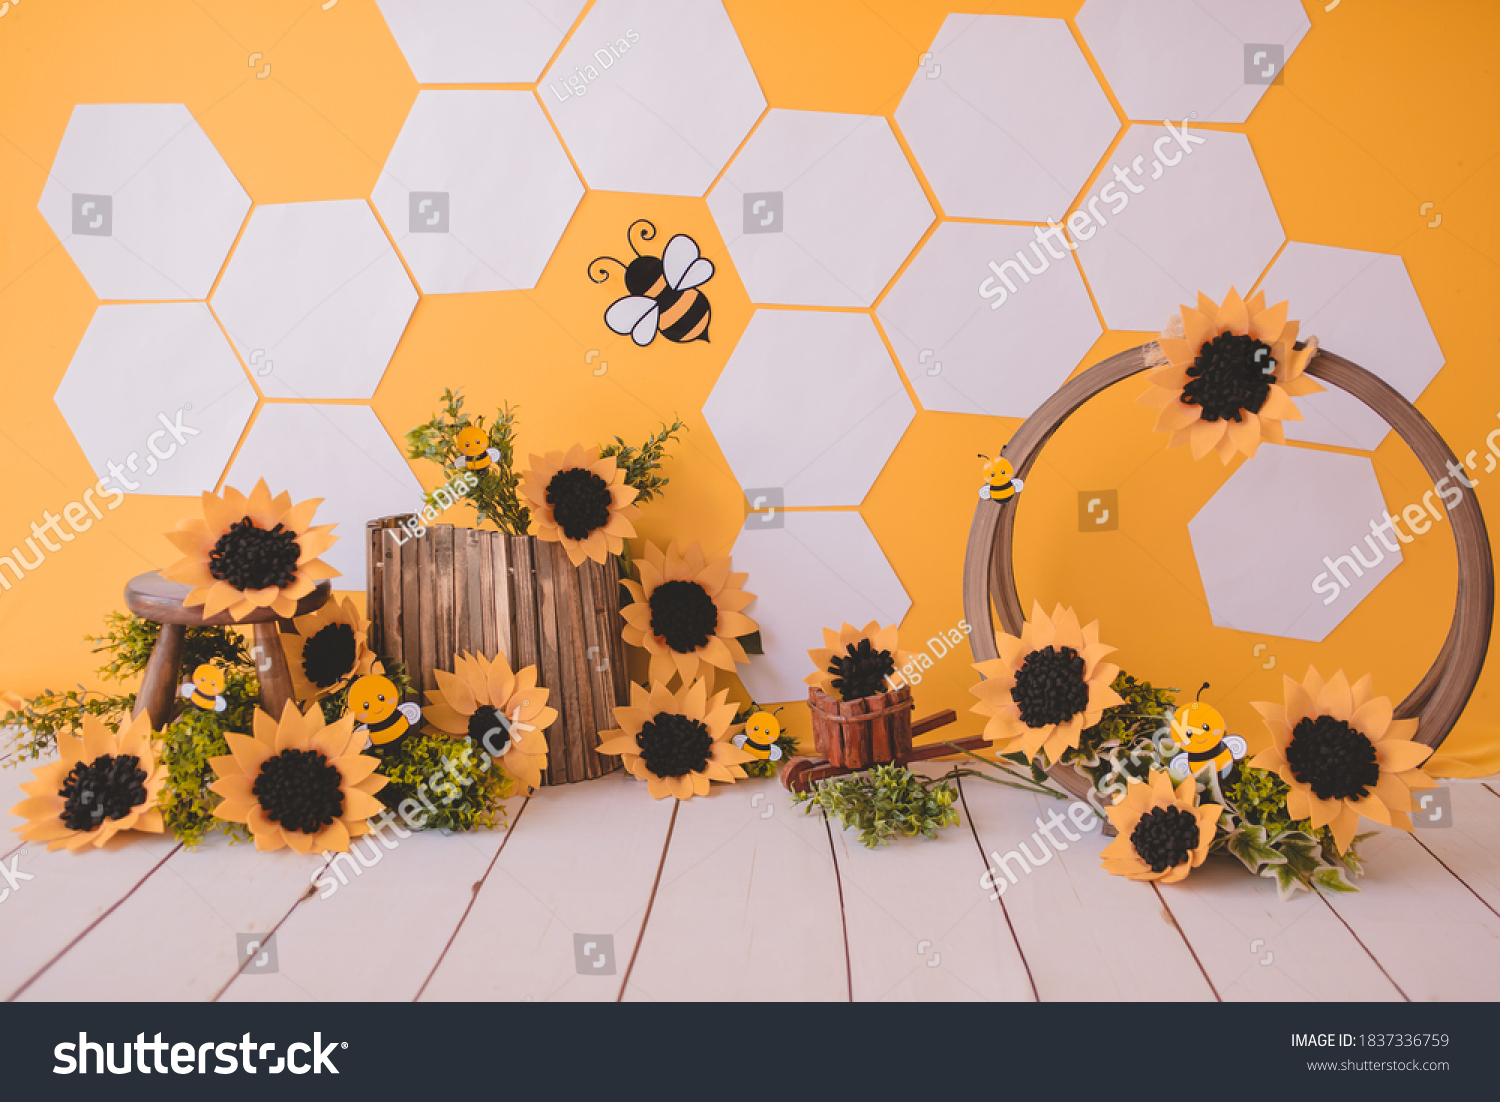 Bees background with sunflower for photography studio #1837336759